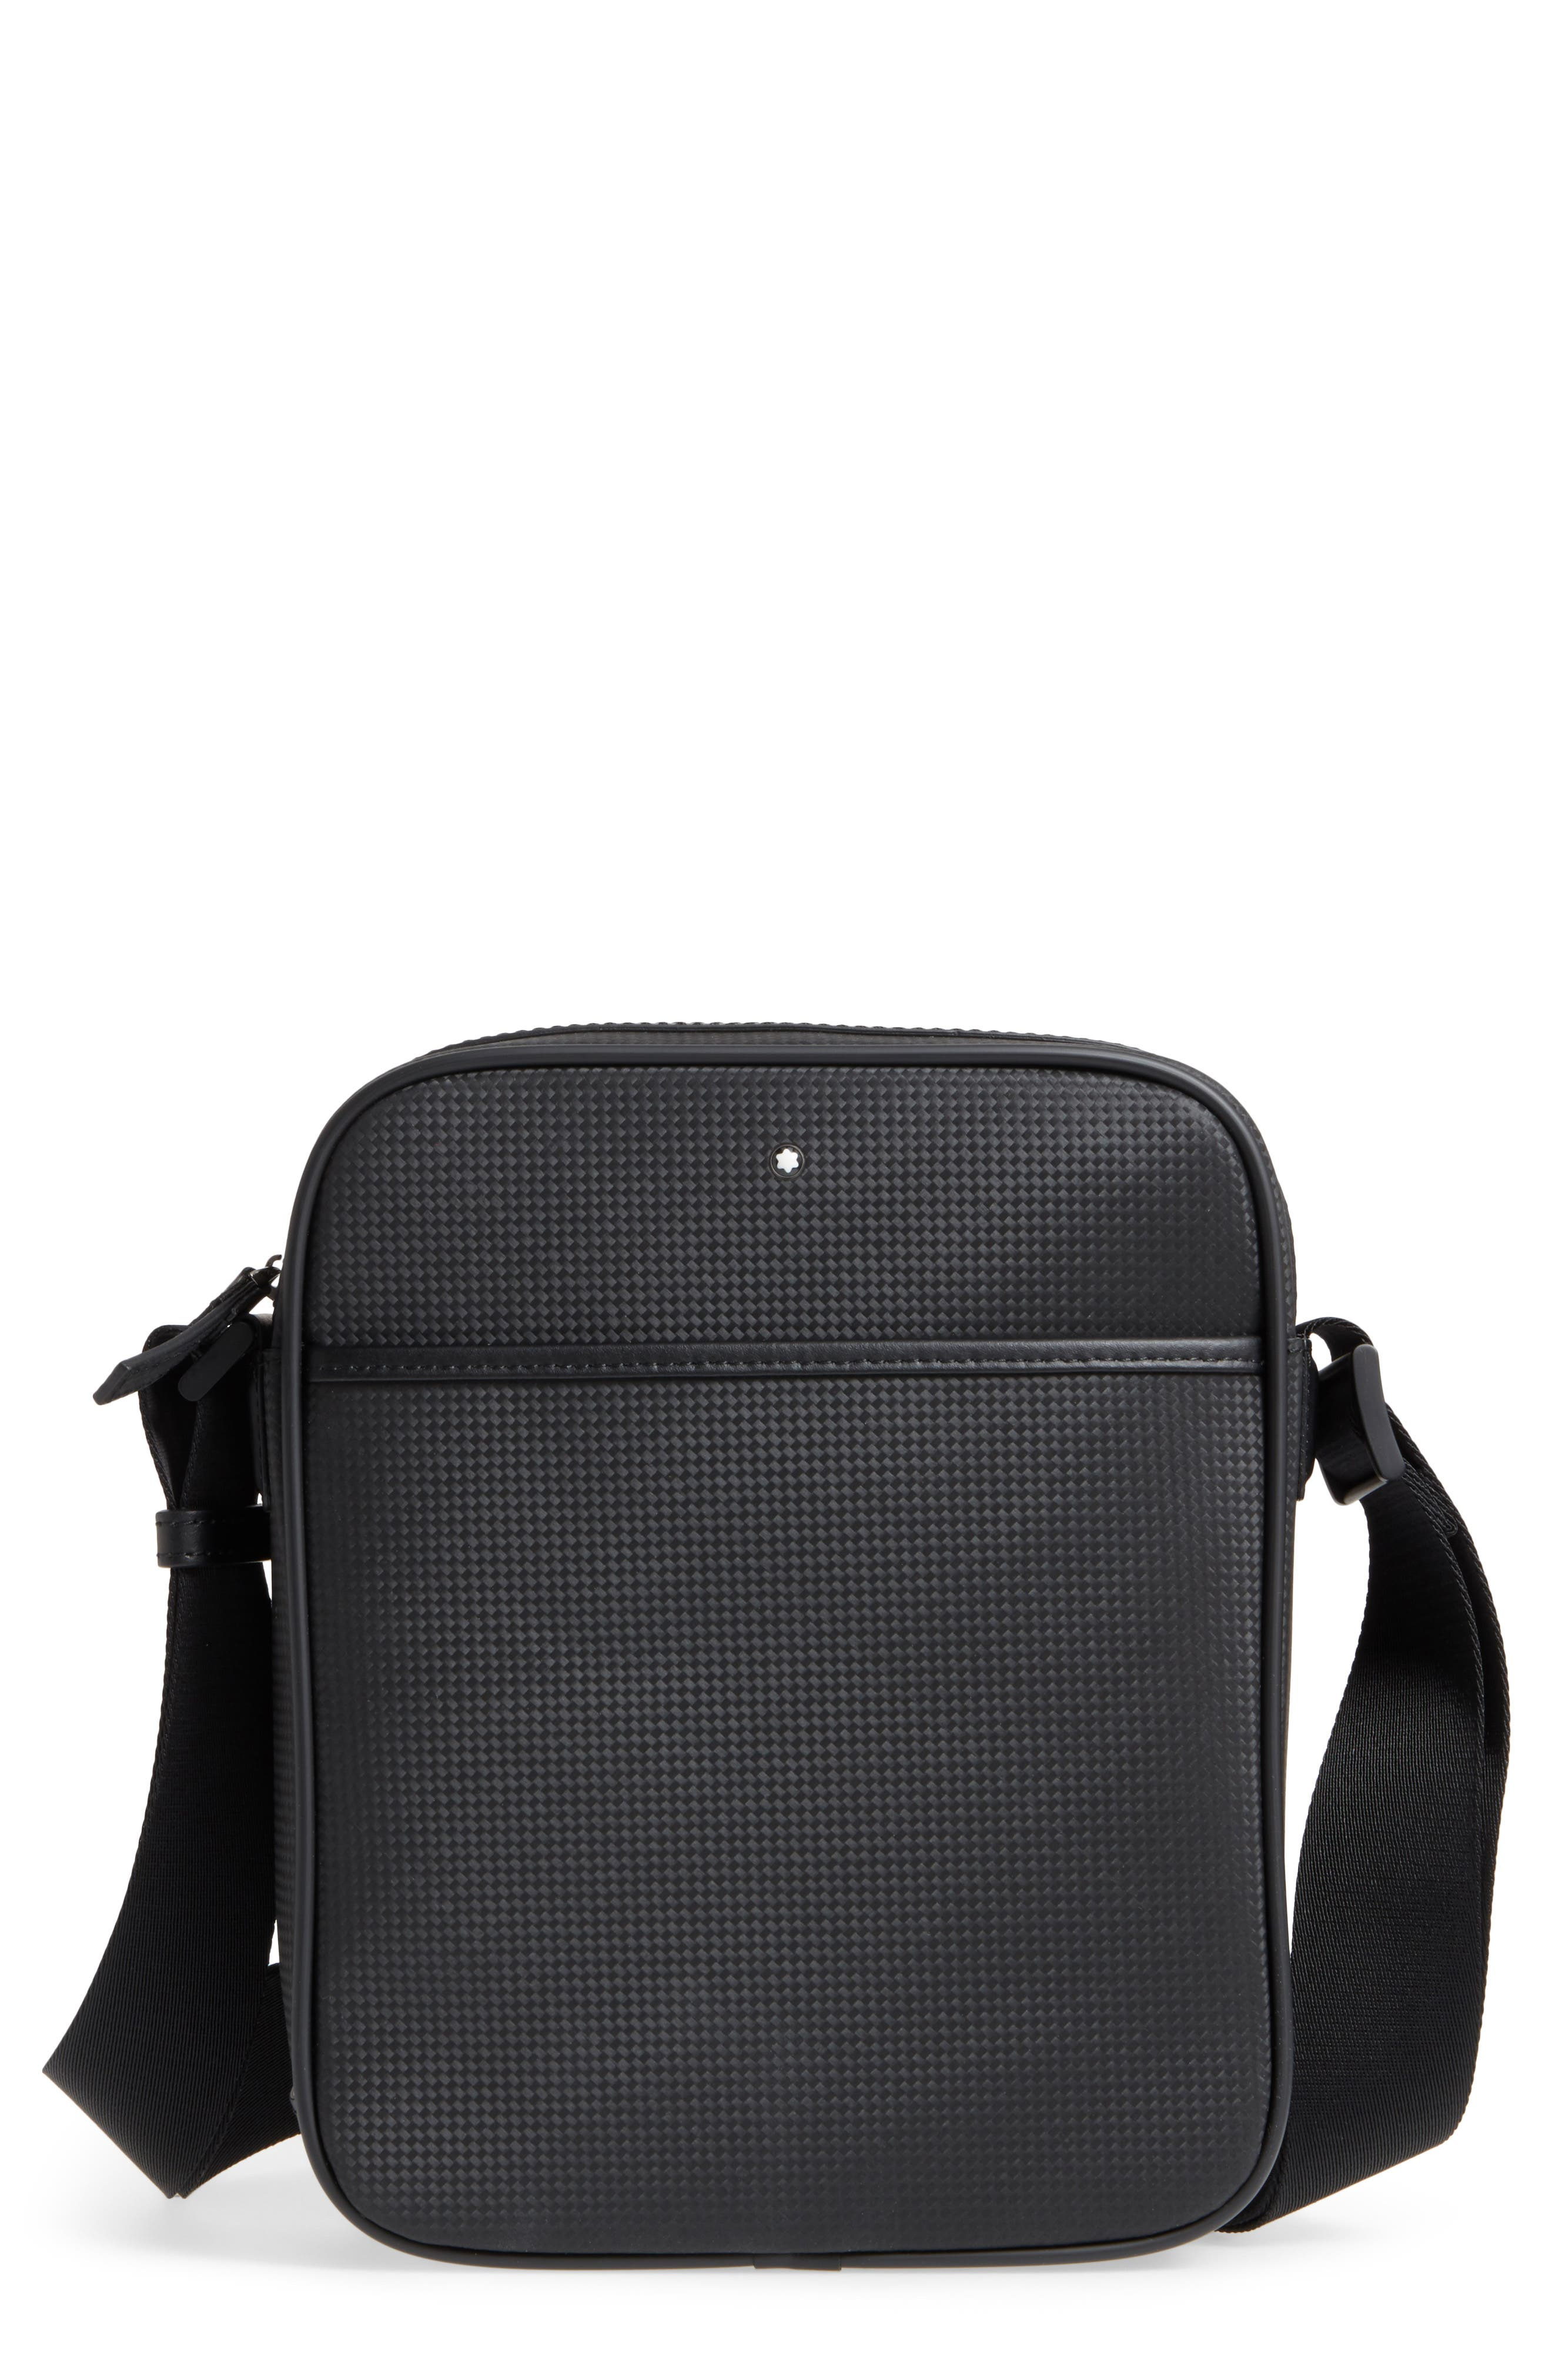 Extreme Reporter Leather Bag,                         Main,                         color, Black